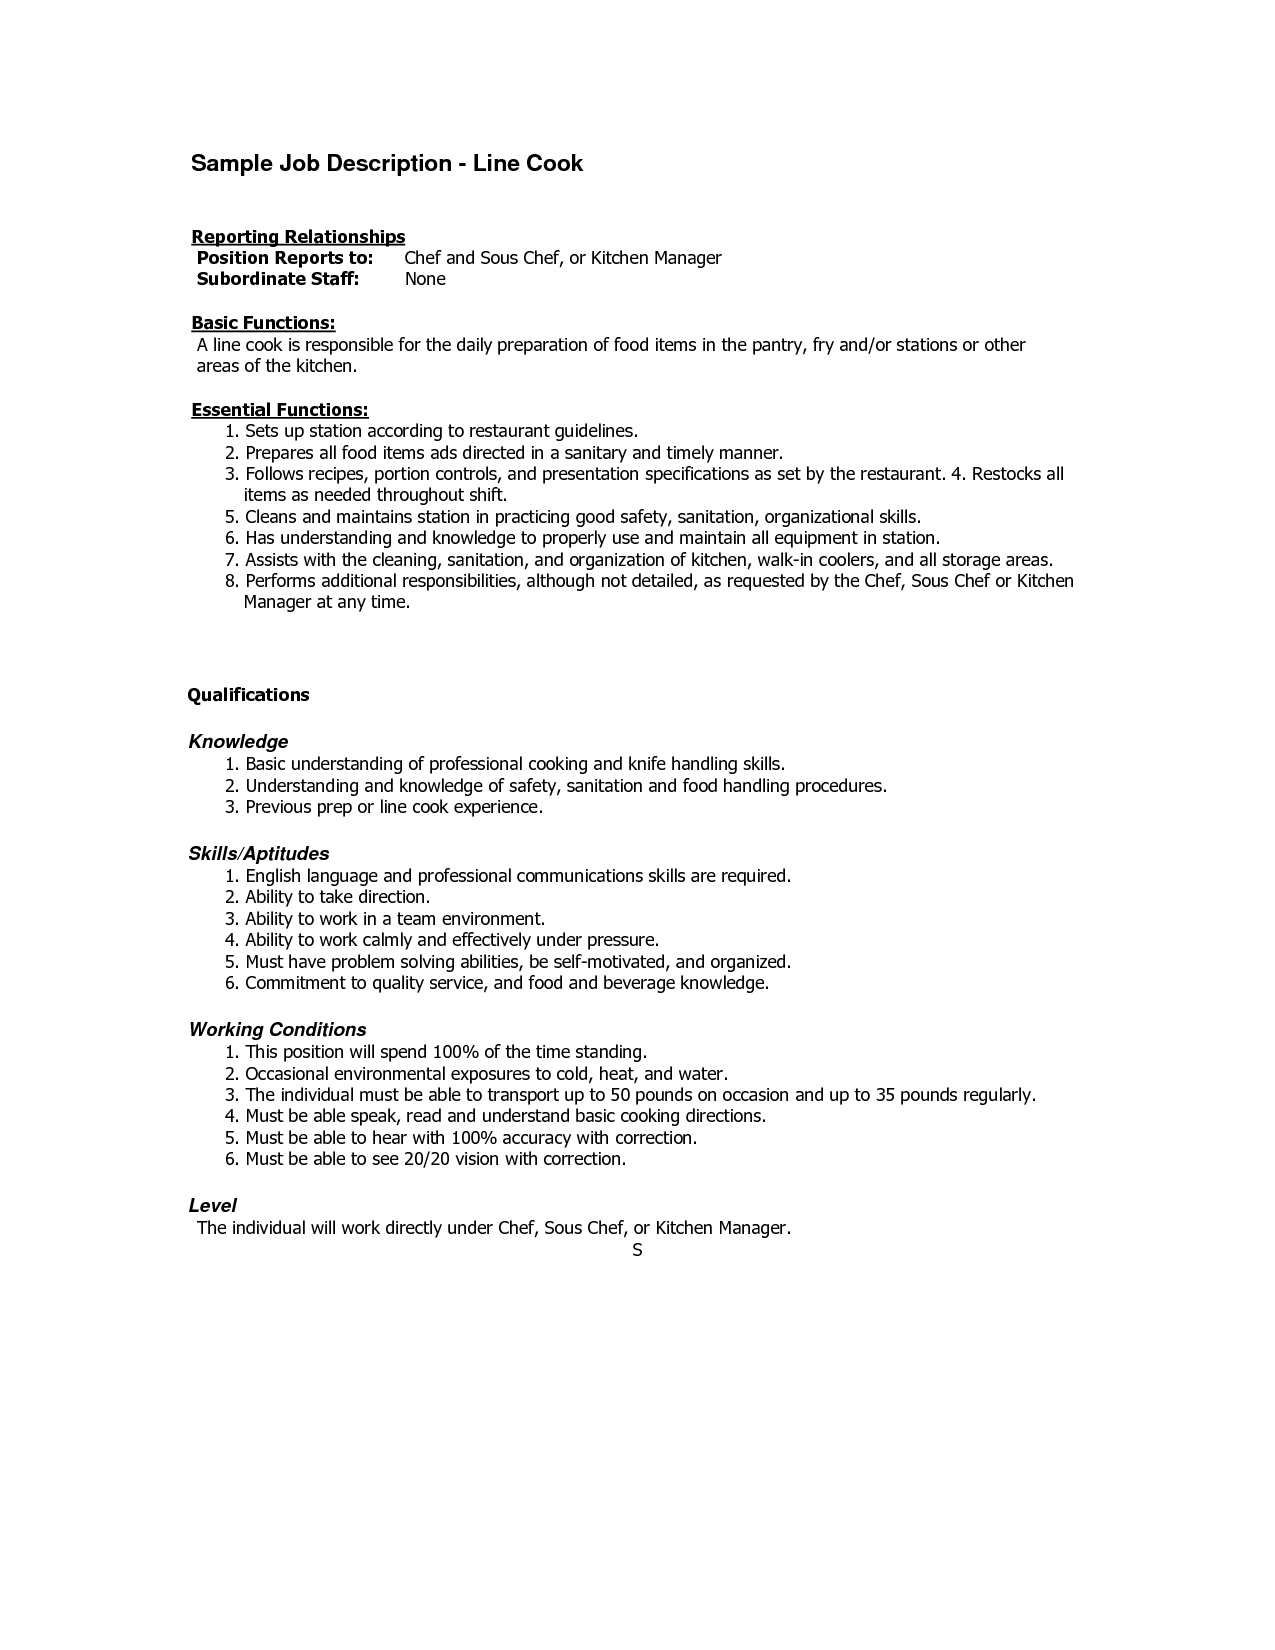 Correctional Officer Skills Resume Unique Kitchen Manager Job